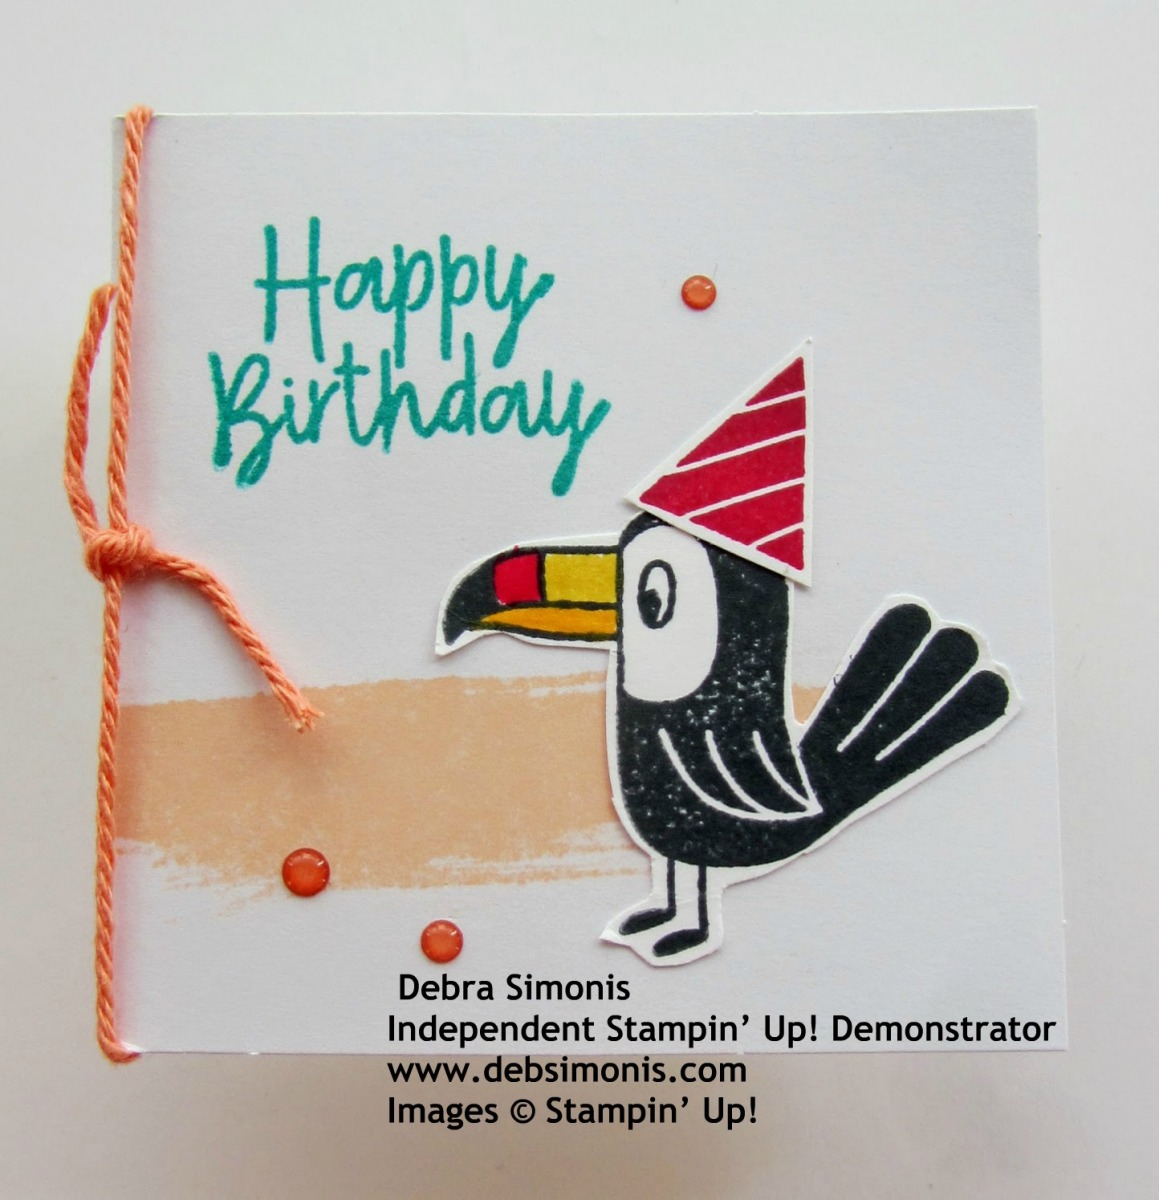 Stampin-Up-Birthday-Bonanza-3-x-3-Toucan-Birthday-Gift-Enclosure-Card-Starburst-Punch-Stitched-Shapes-Dies-Best-Dressed-Note-Cards-Envelopes-Debra-Simonis-Stampinup